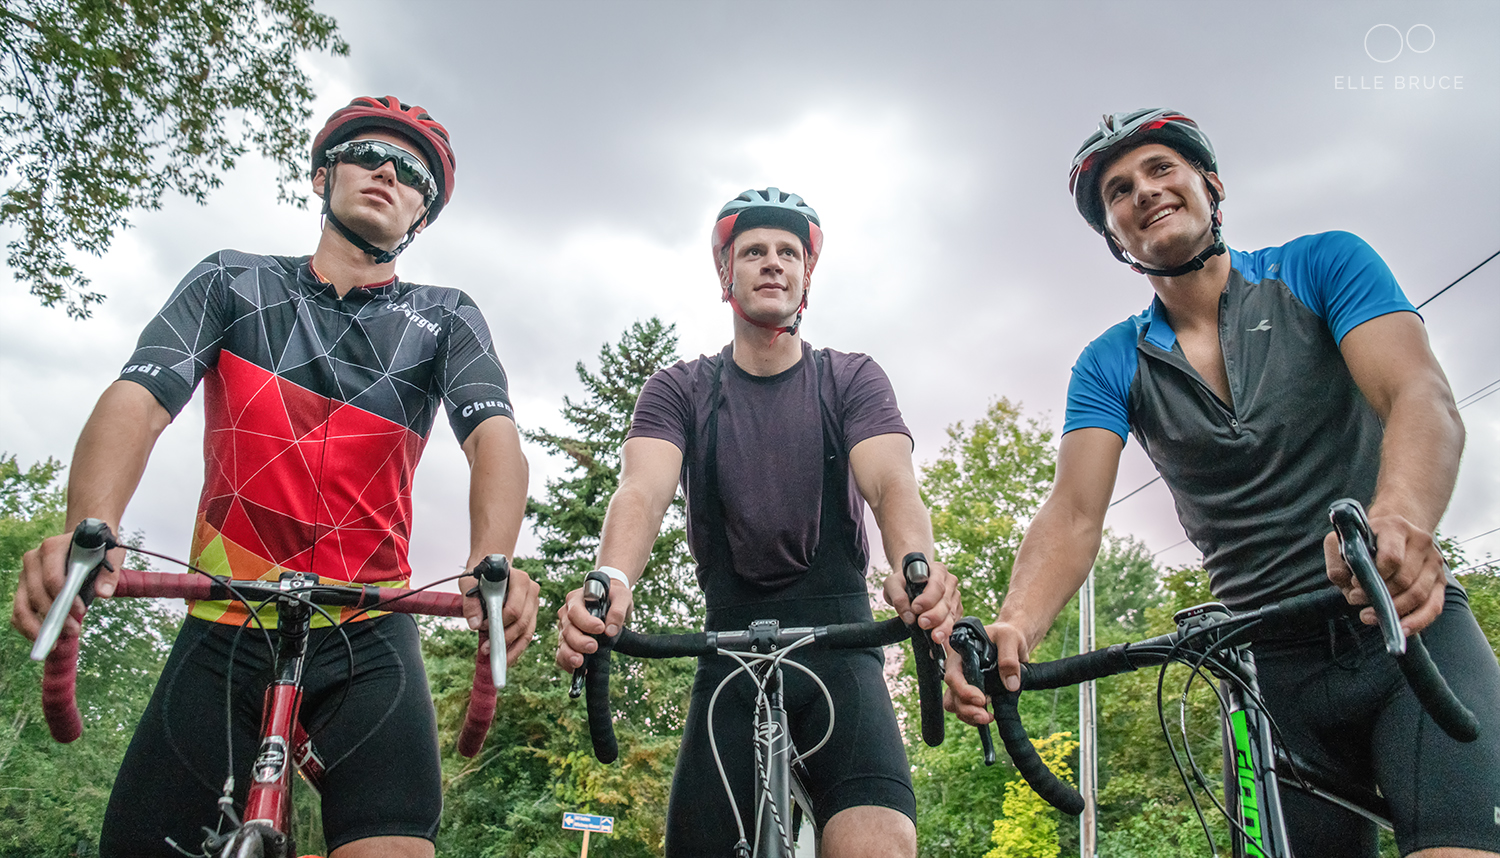 Fortunately many of my fellow Canadian Laser sailors share my interest in making cycling a key component the training program so I rarely have trouble finding others to ride with.  L to R: Liam, Luke Ruitenberg and James Juhasz